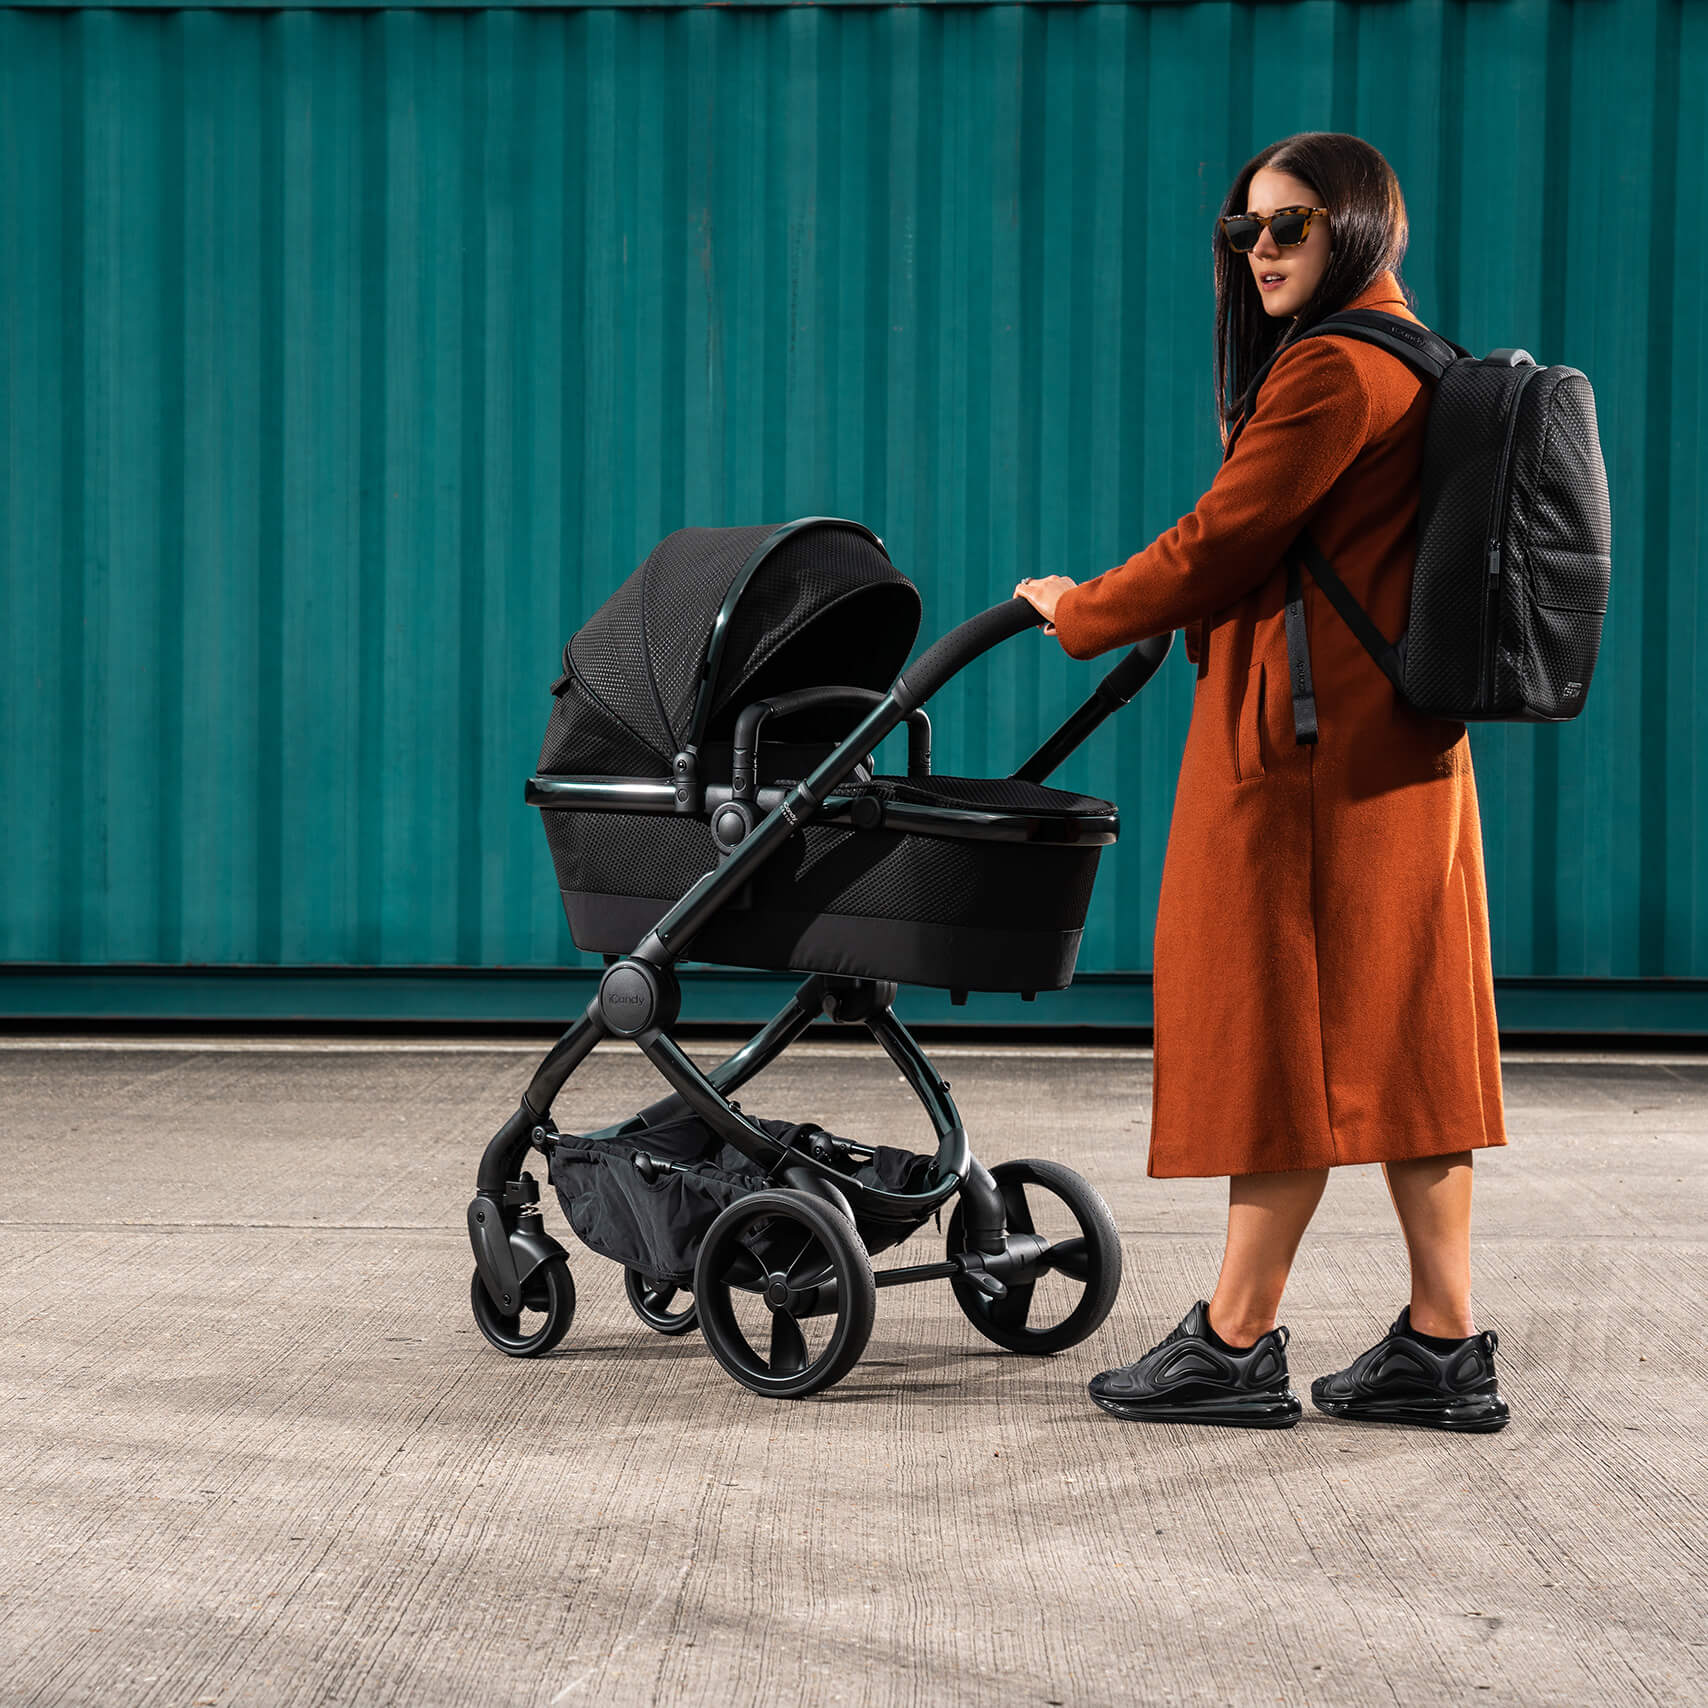 What is a pram?